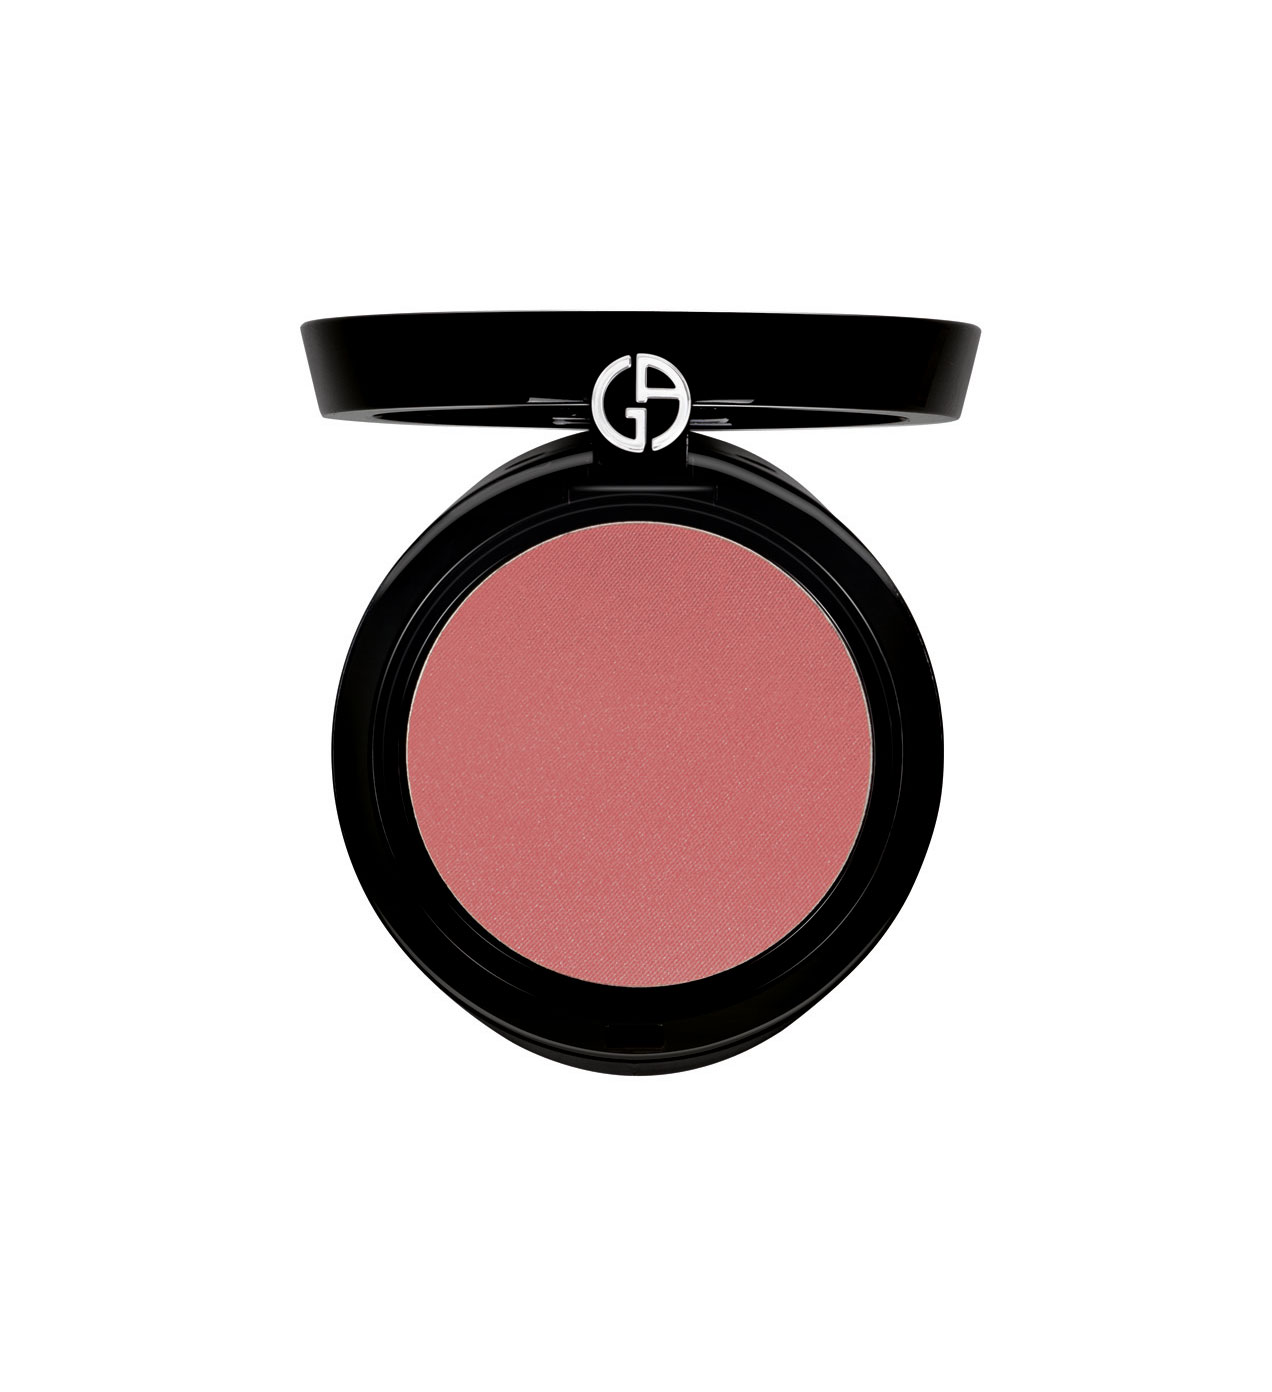 Giorgio Armani, Cheek Fabric Blush nº 506.